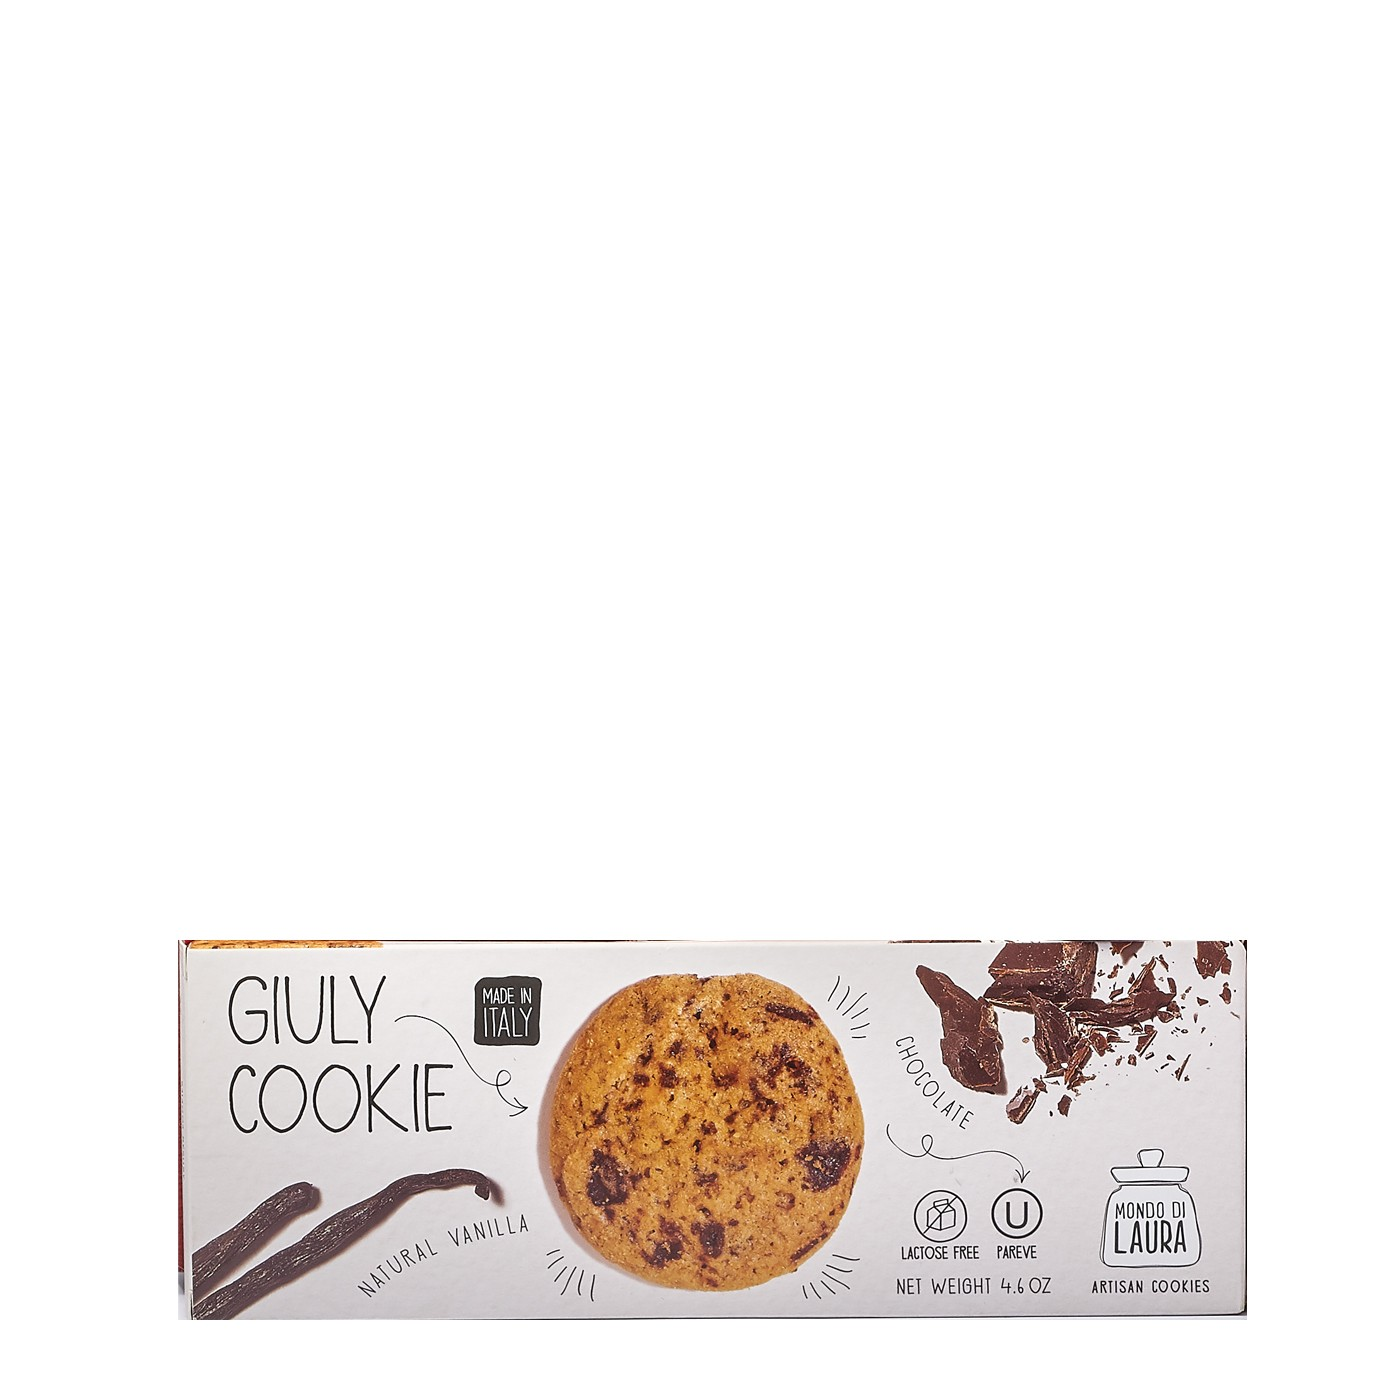 Chocolate & Vanilla Giuly Cookies 4.6 oz